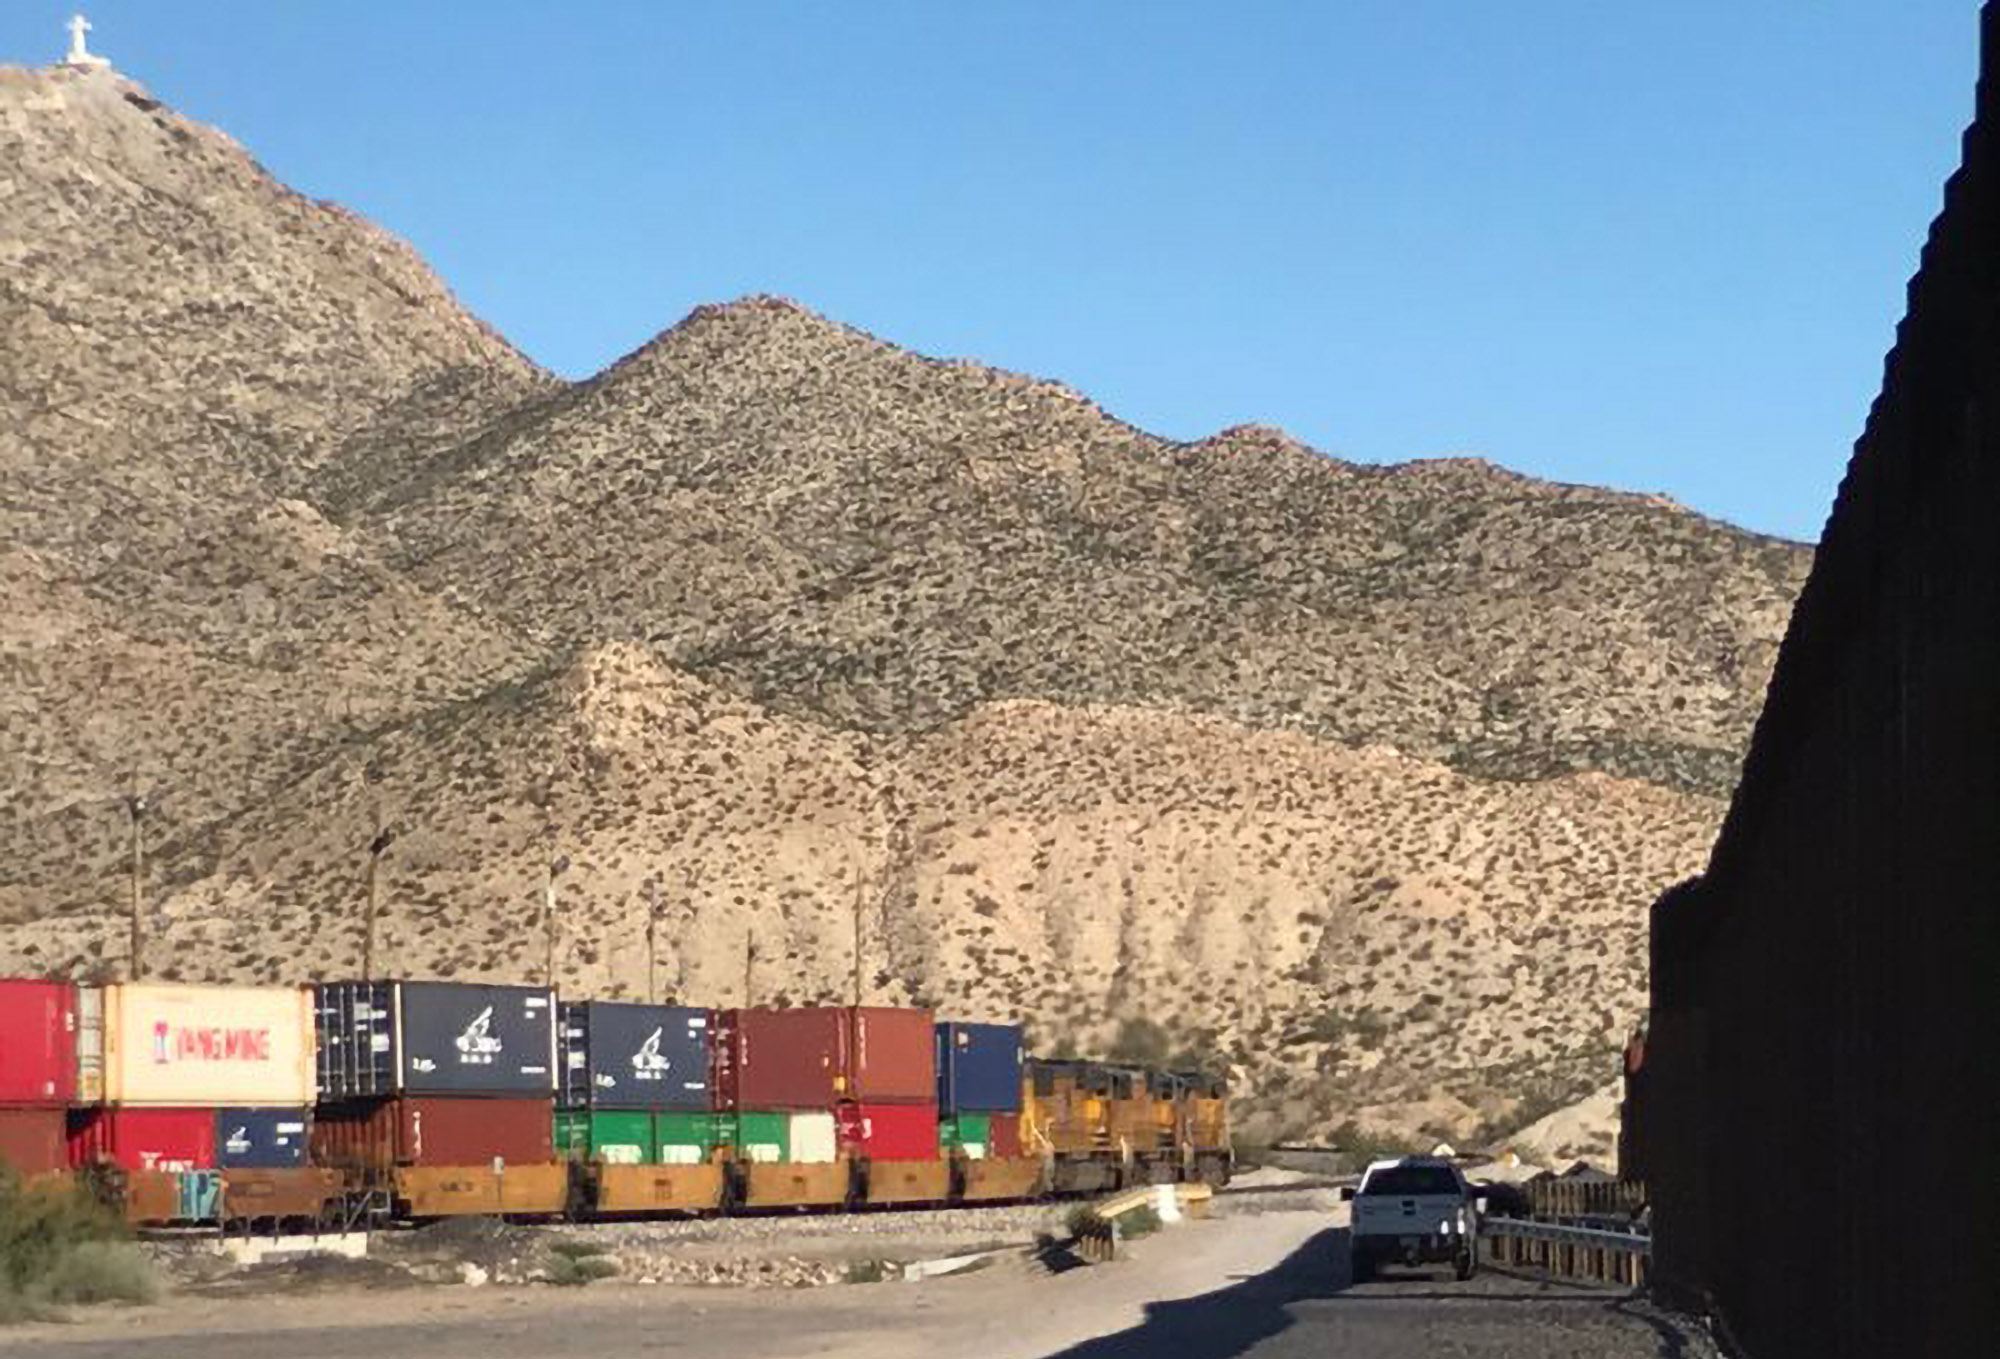 The border wall between Sunland Park, New Mexico; El Paso, Texas; and Ciudad Juárez, Mexico. Photo by Teresa Waggener.